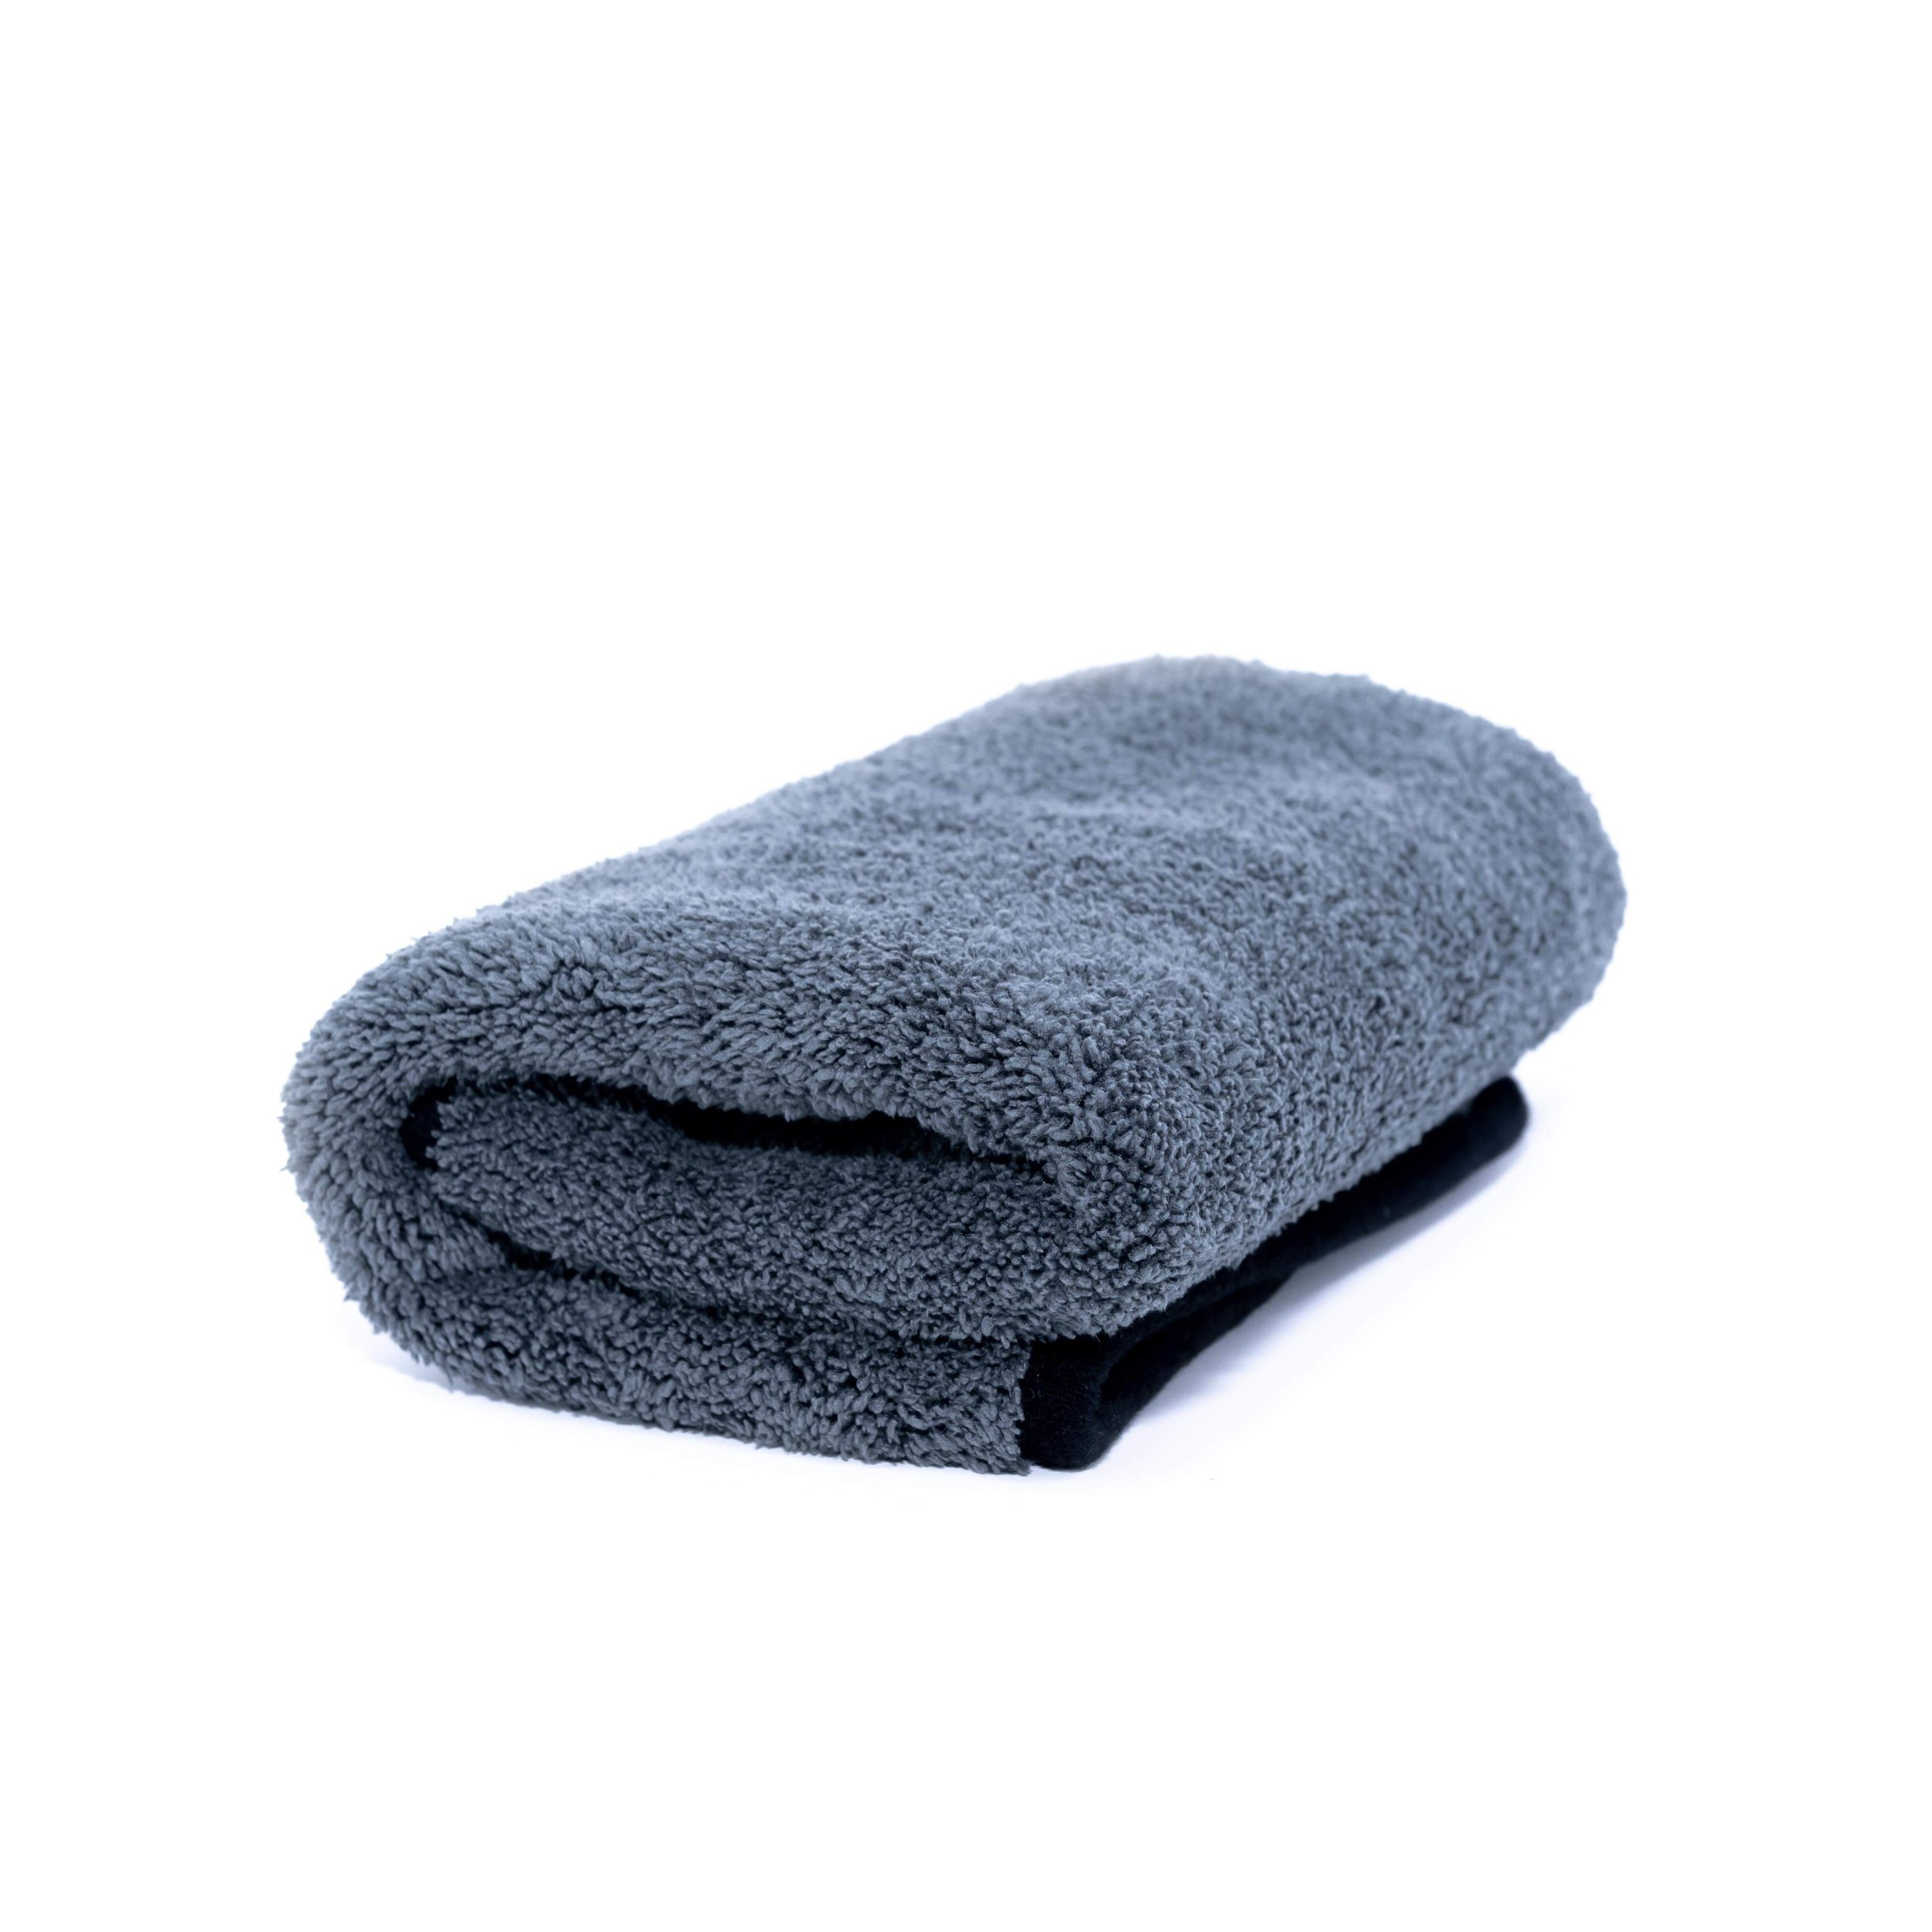 Vvash Auto Care 1000 GSM Microfiber Towel 16x16